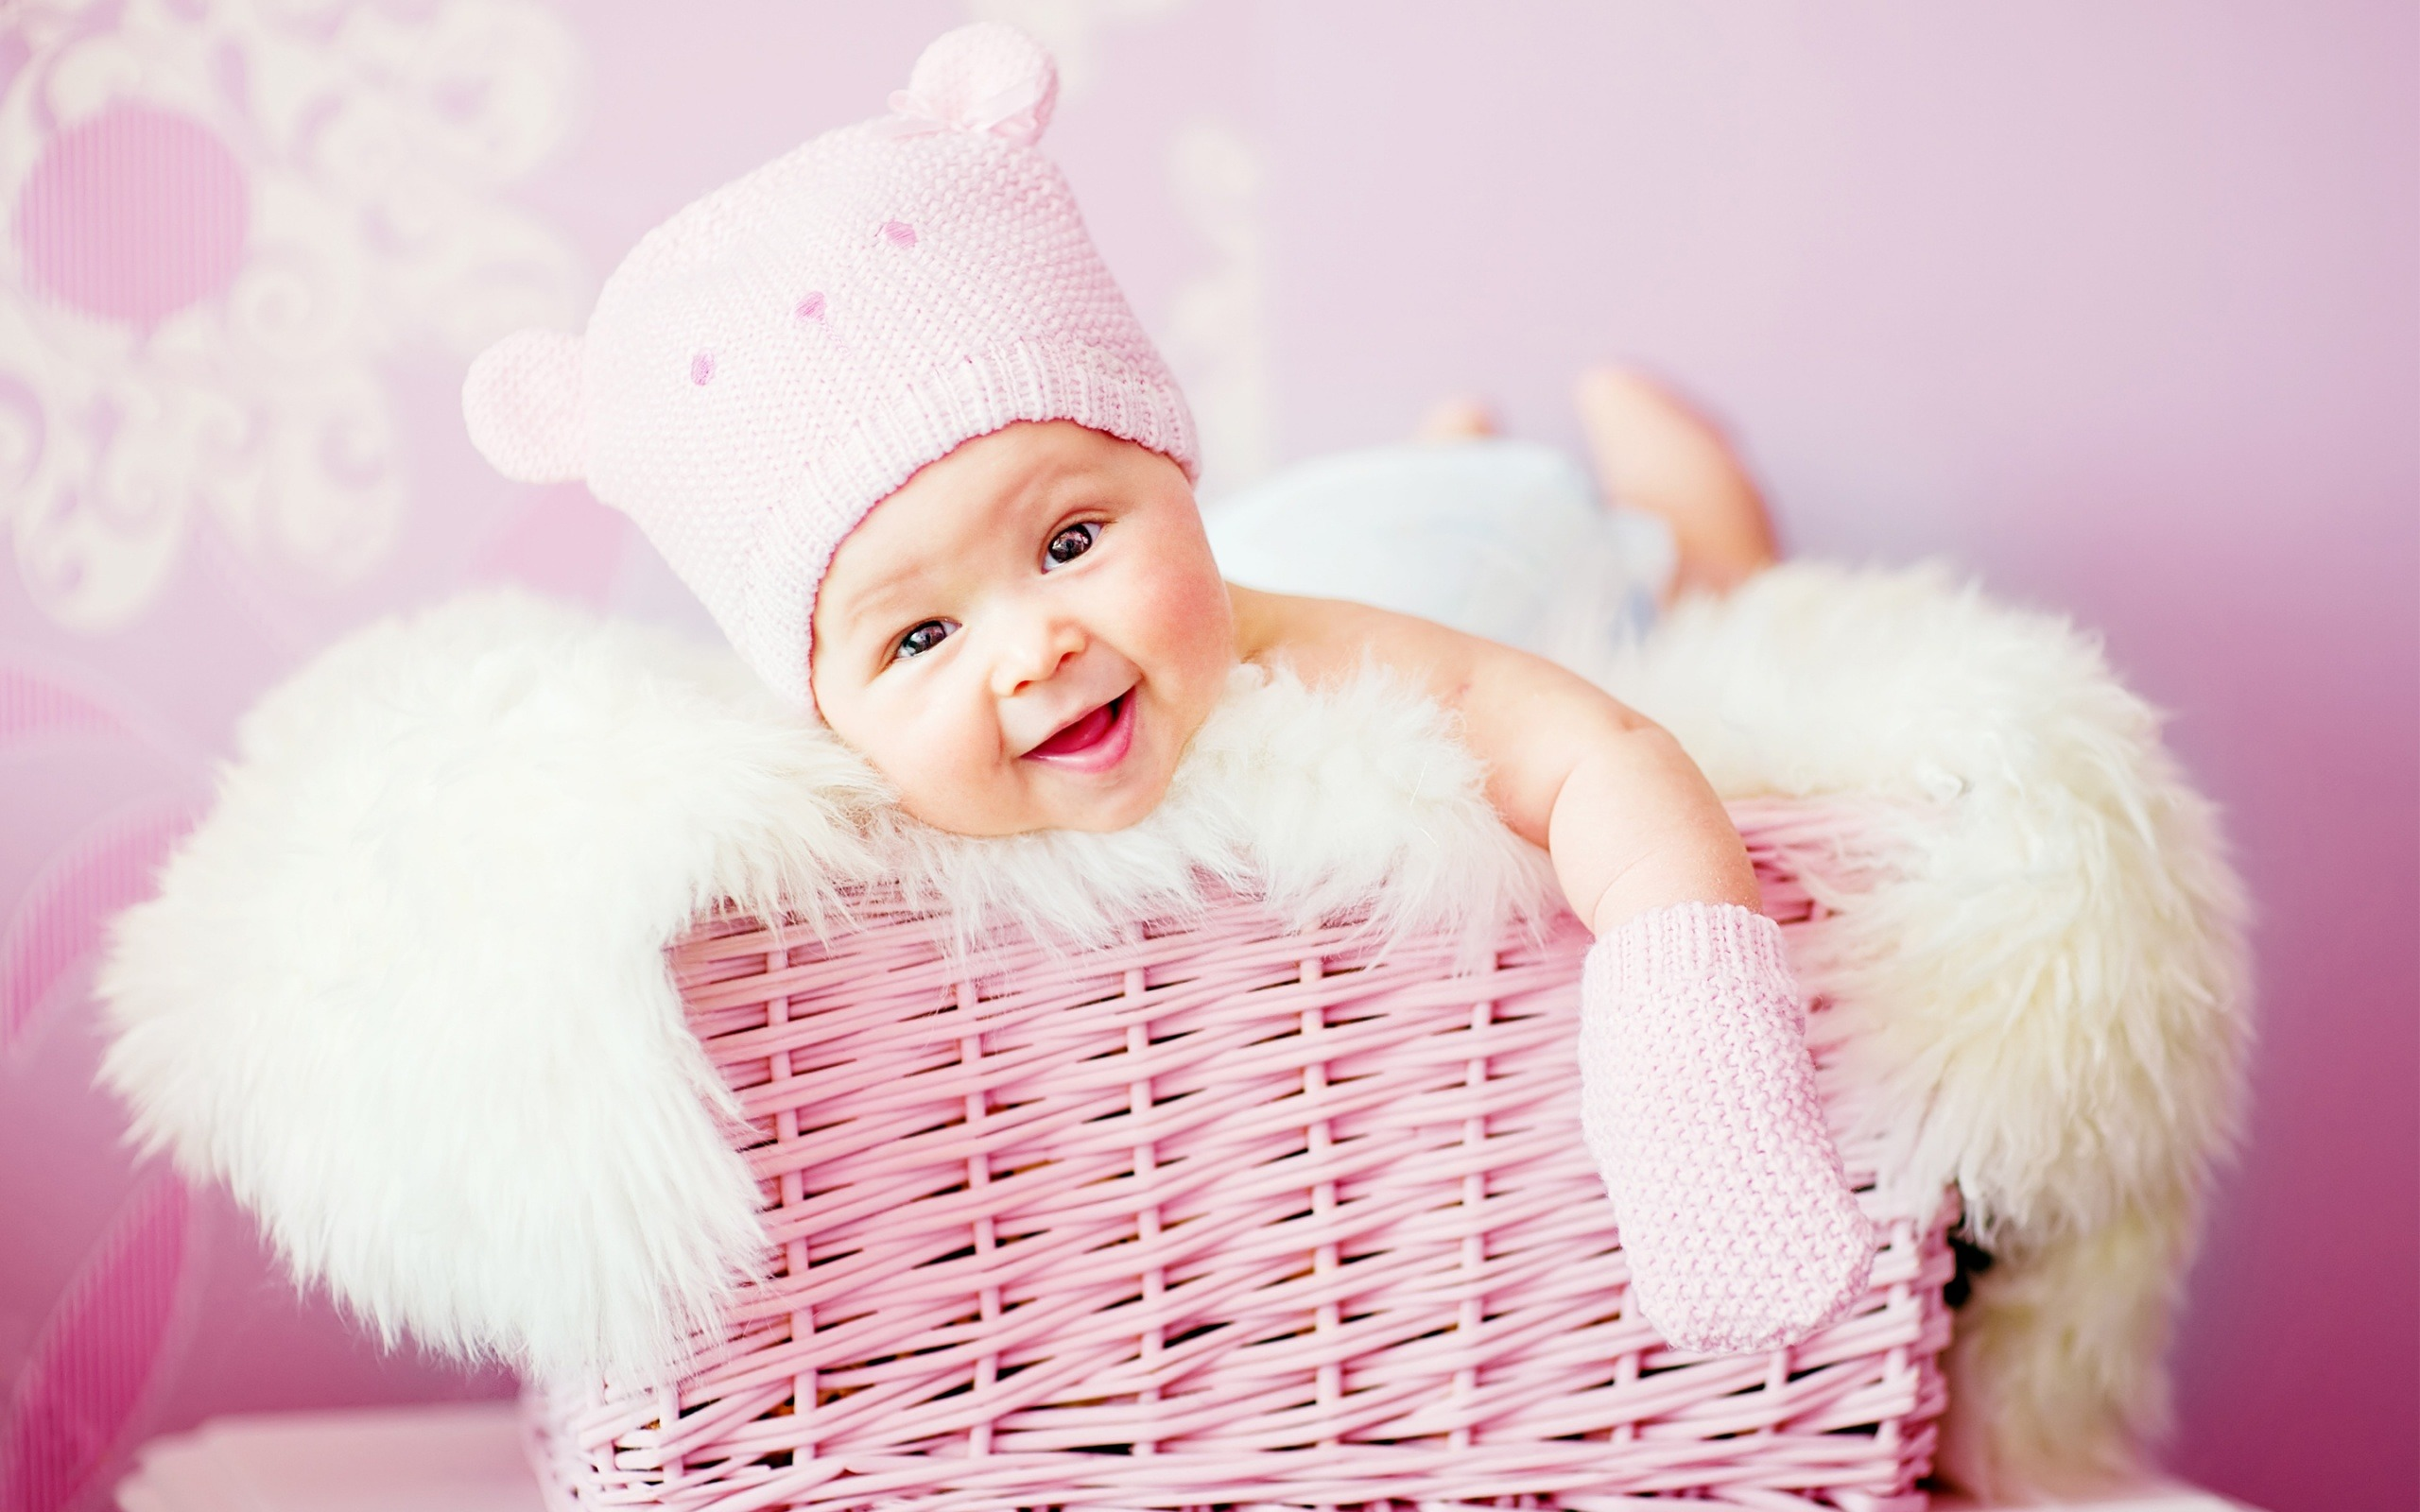 Cute Smiling Baby Photo Shoot Wallpaper for Desktop